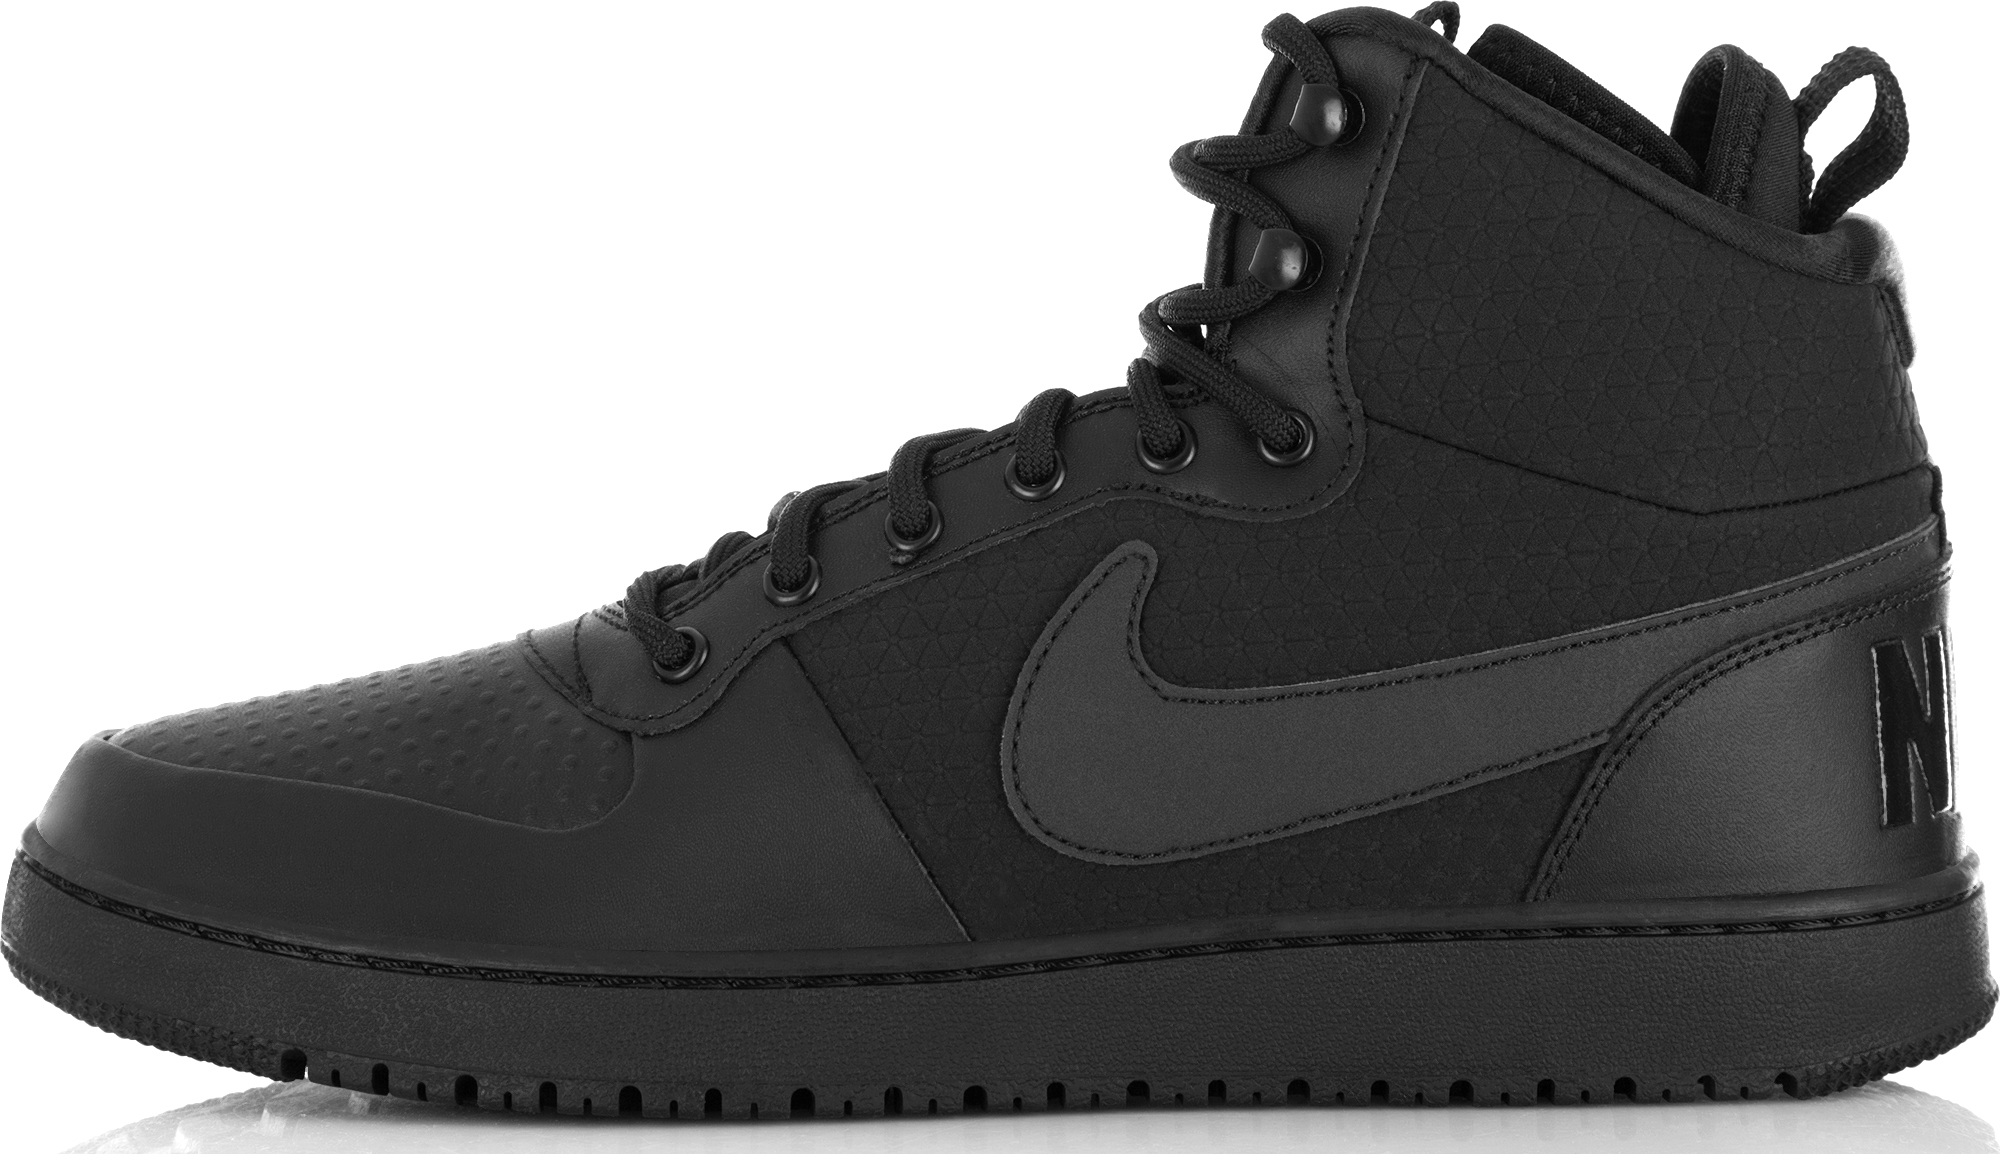 Nike Кеды мужские Nike Court Borough Mid Winter